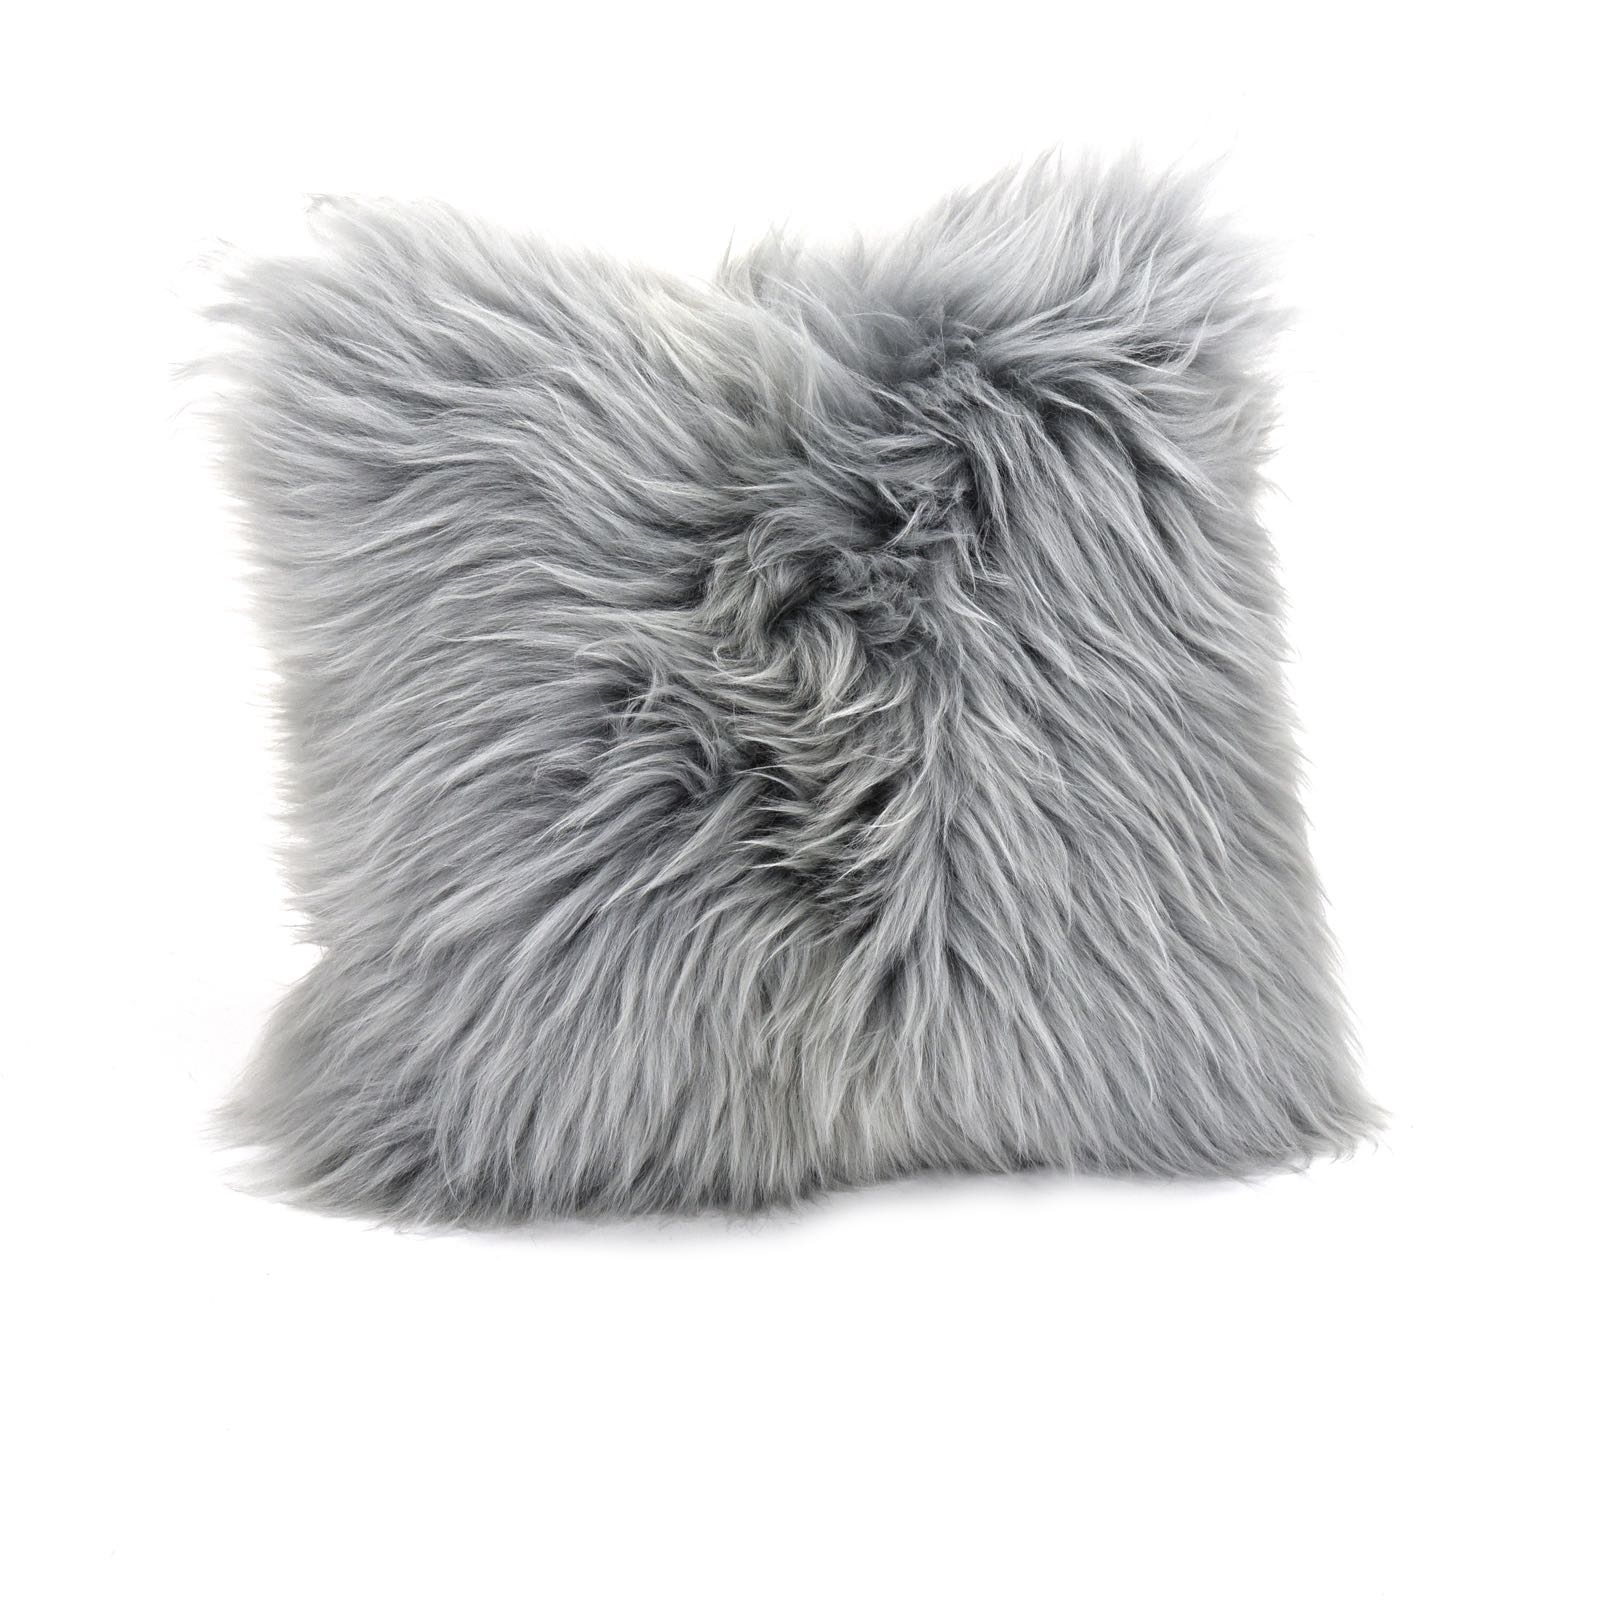 Baa Stool square sheepskin cushion in silver approx 45cm x 45cm